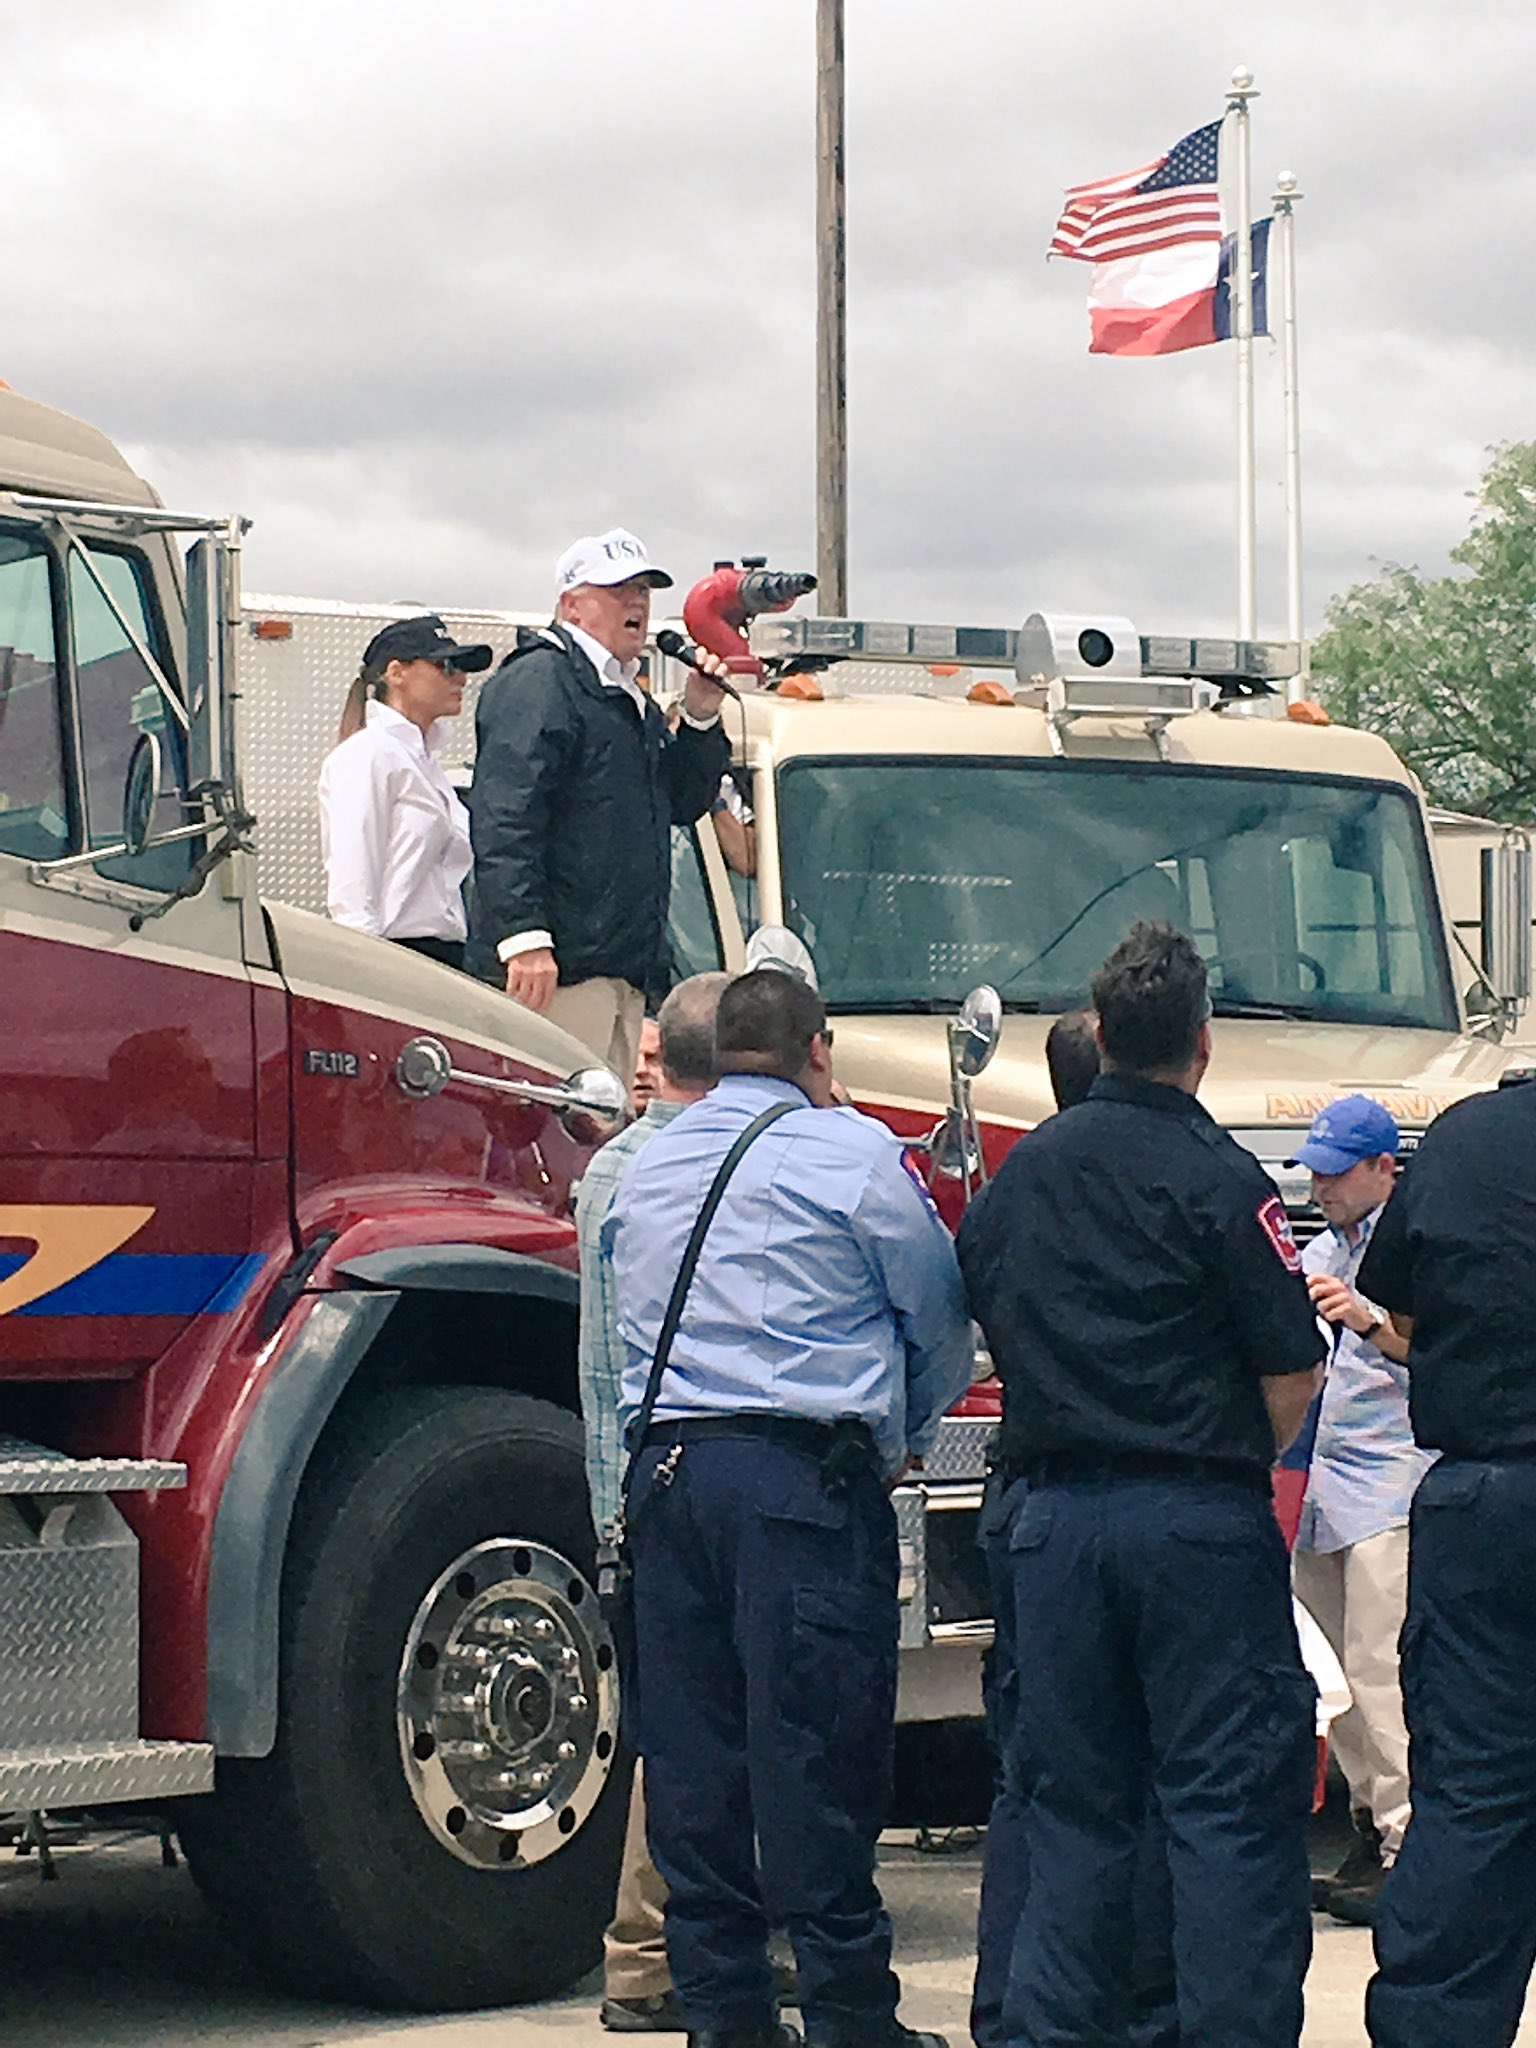 .@POTUS addresses crowd from front of fire truck outside of in Annaville Station 1. #HurricaneHarvey #POTUSinTX https://t.co/vDIuCITgDA